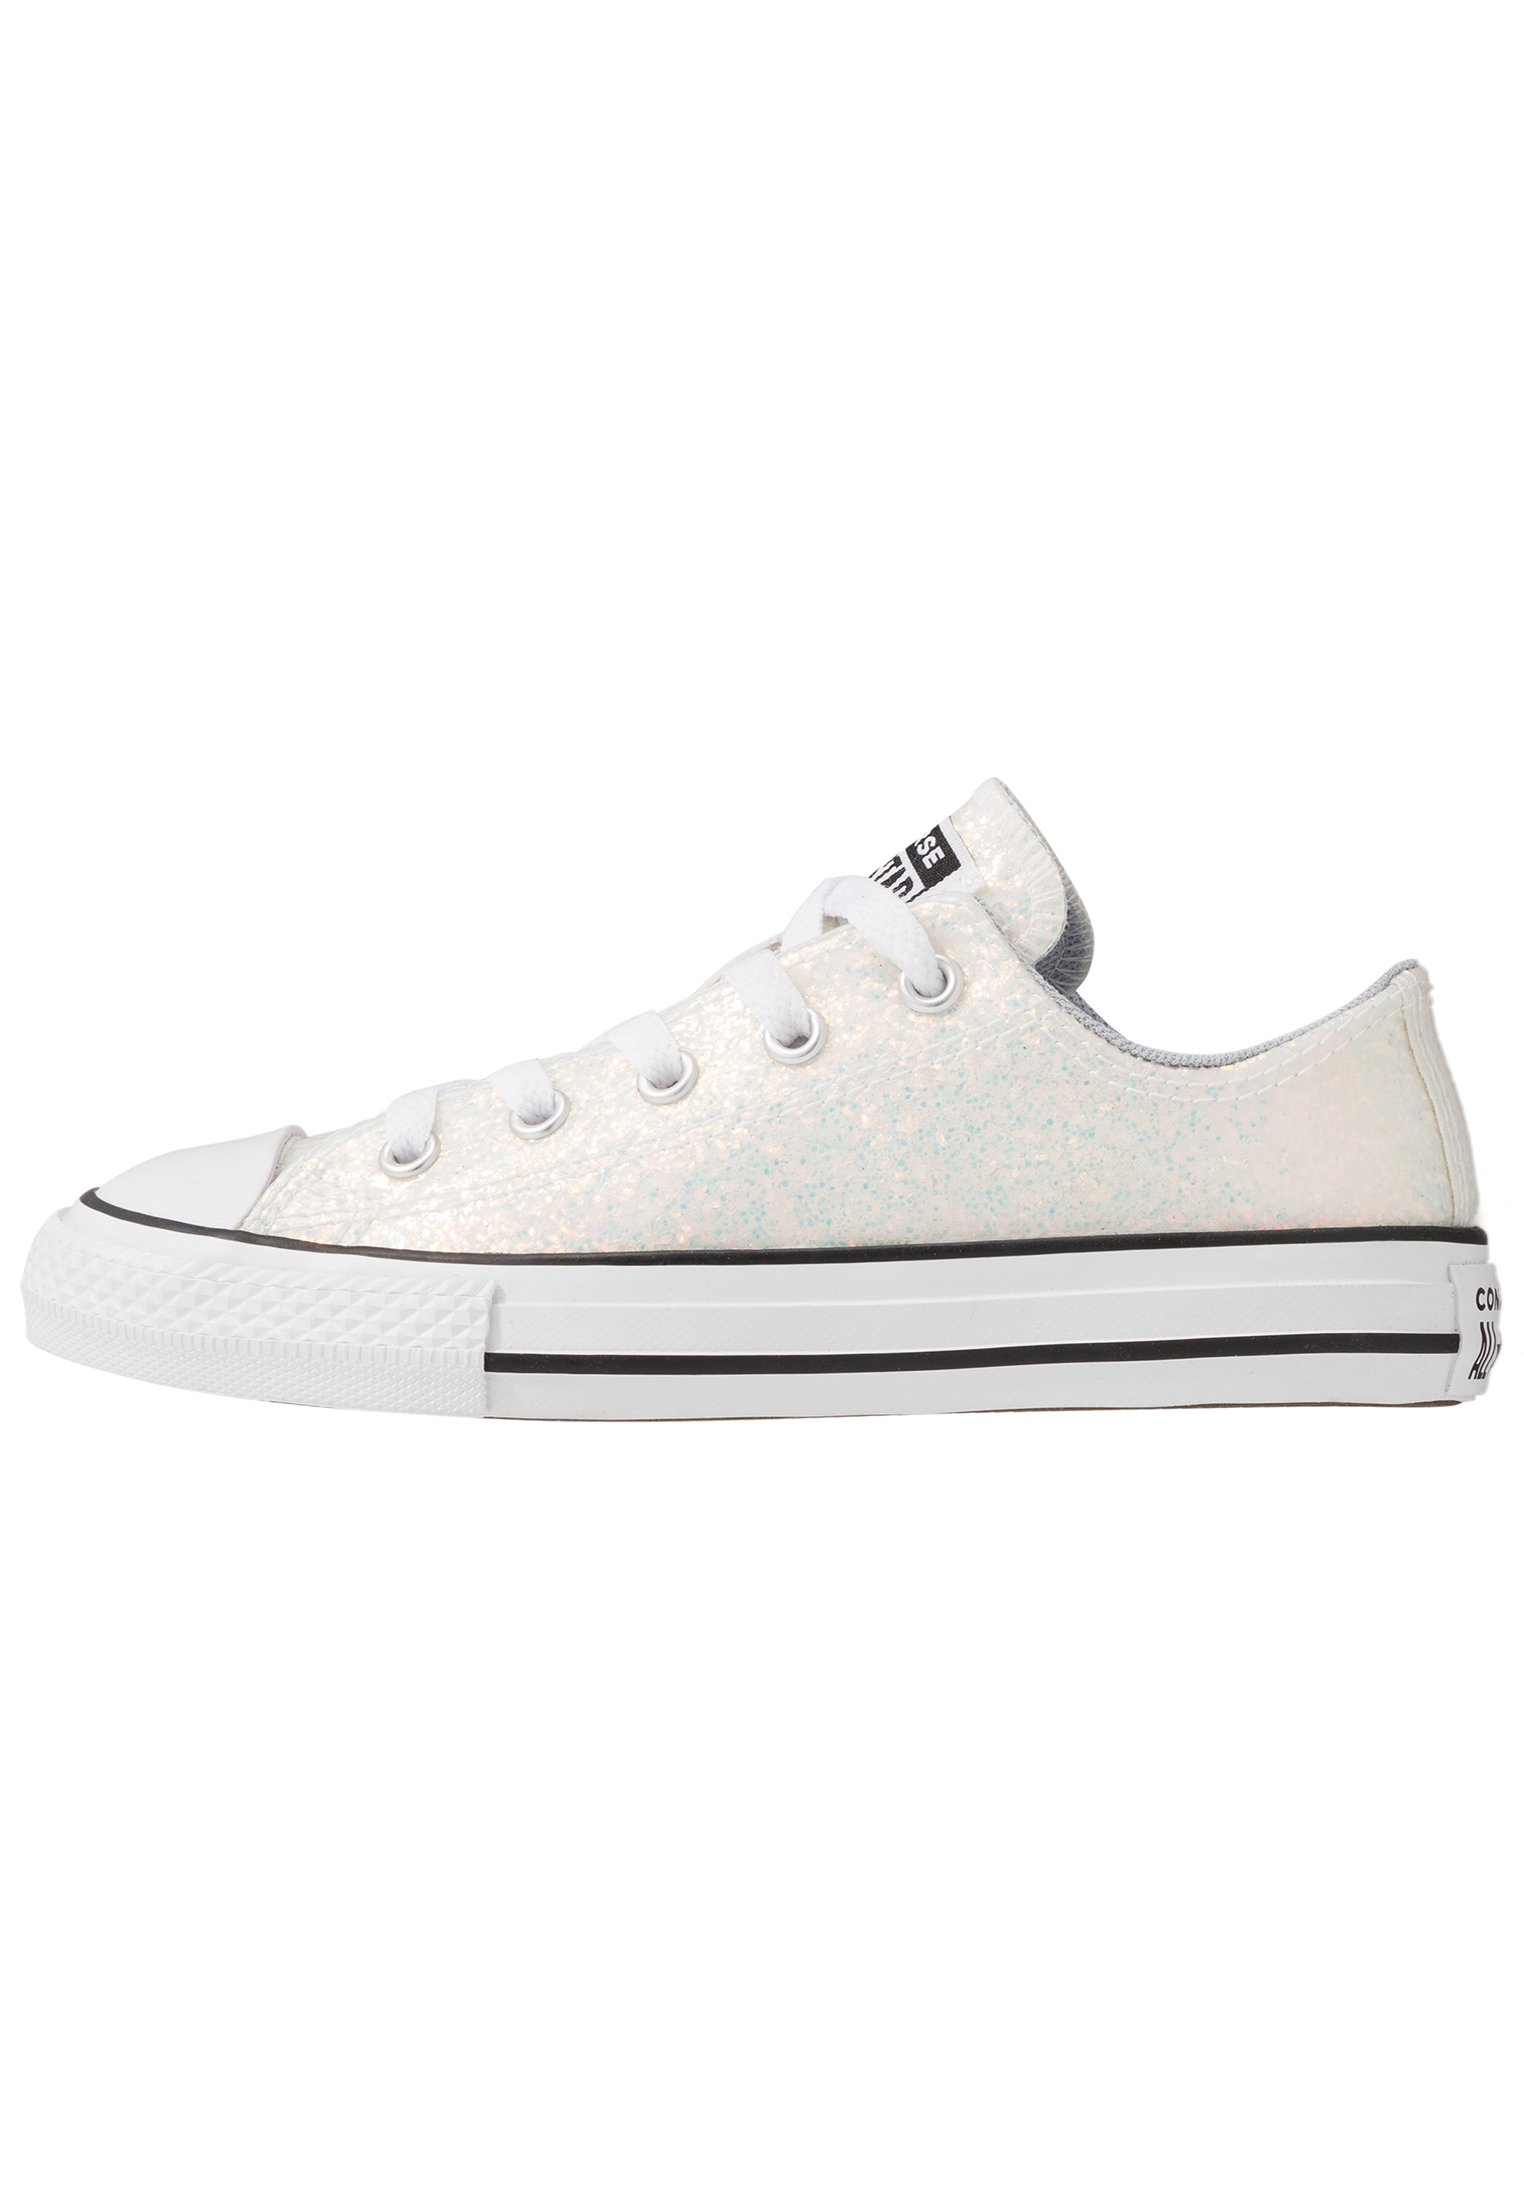 CHUCK TAYLOR ALL STAR COATED GLITTER Sneakers laag wolf greyblackwhite